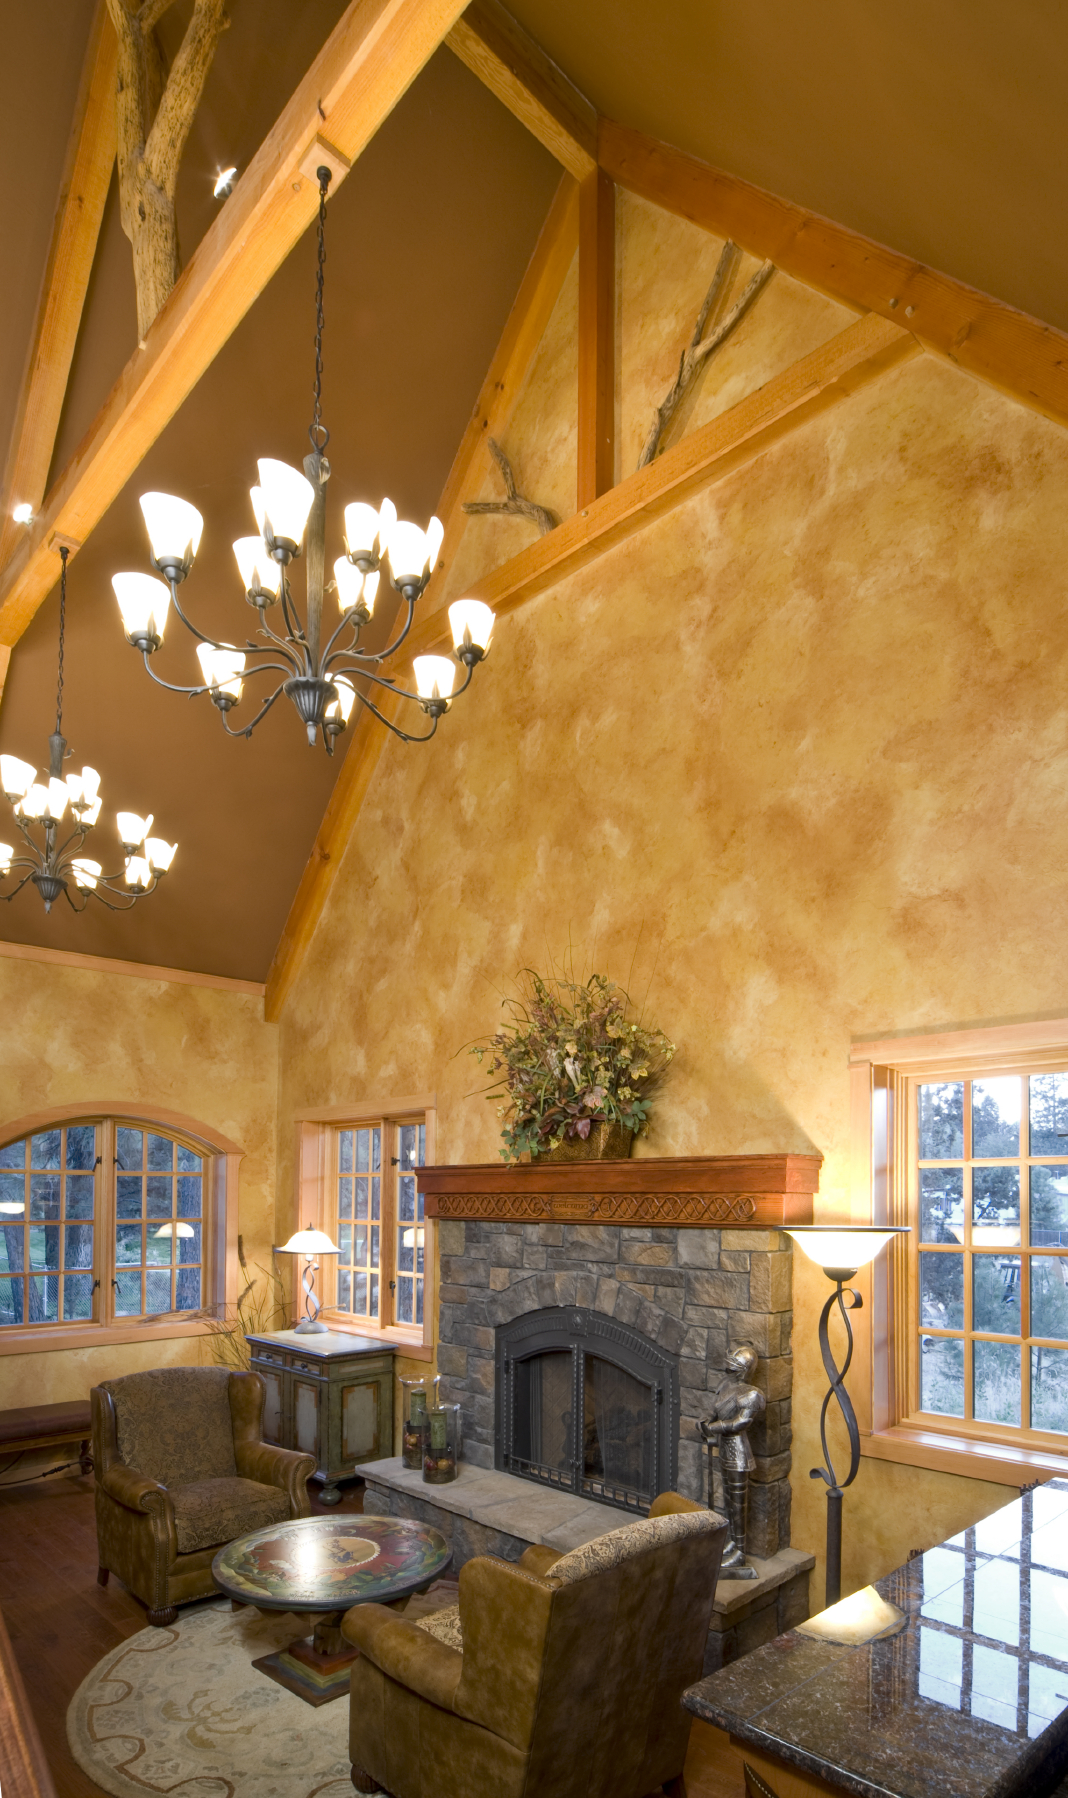 soaring vaulted ceiling with exposed natural wood beams hovers over this cozy space with large - Innovative Wood Beam Ceiling